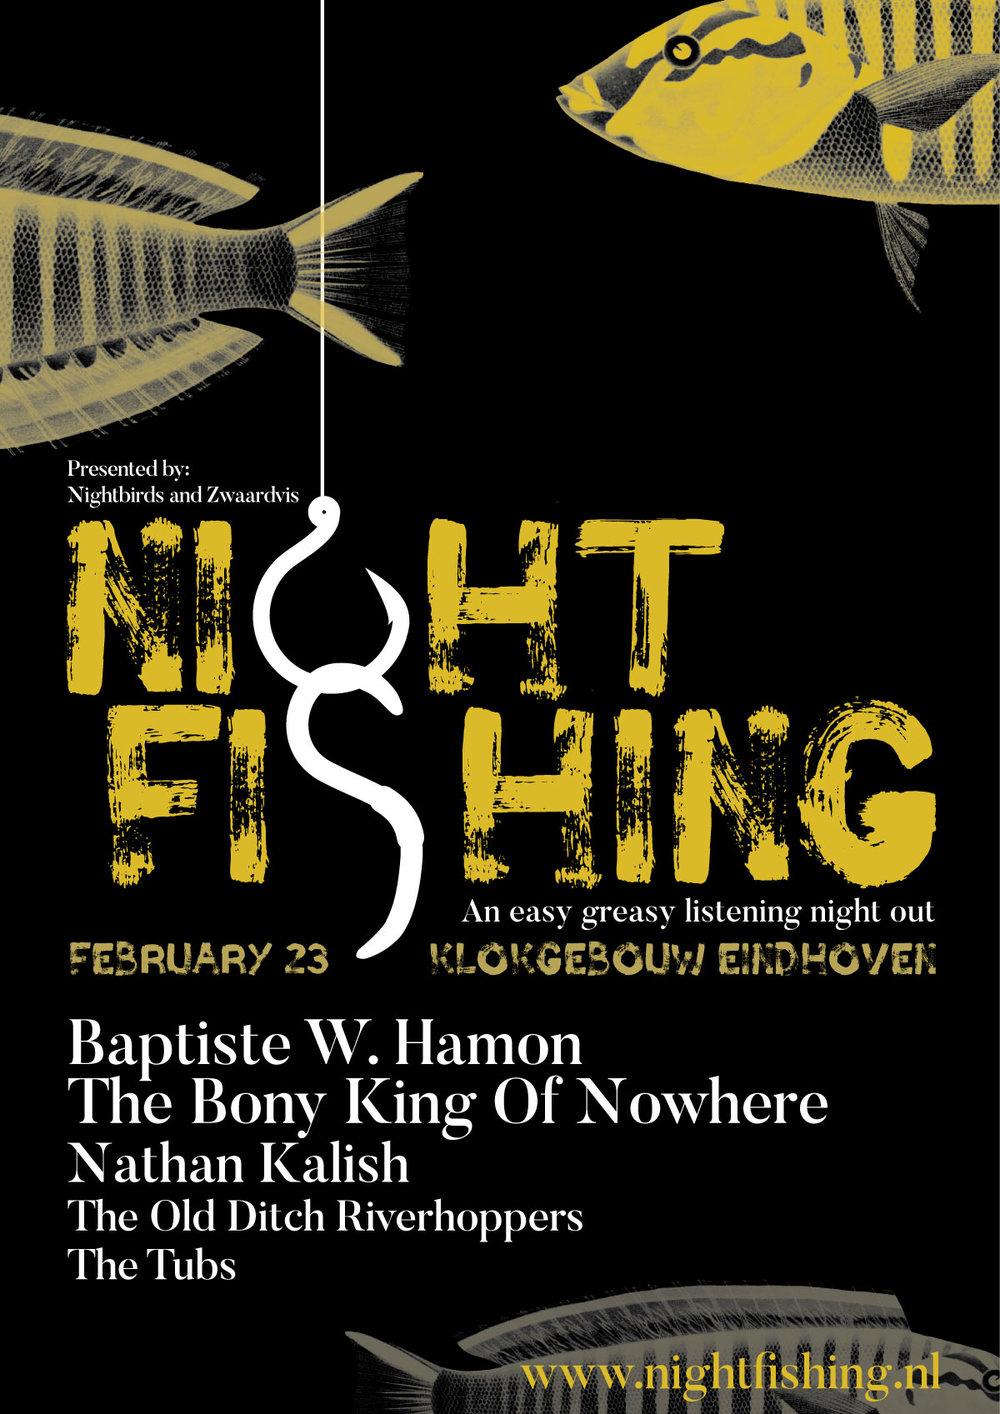 NIGHT_FISHING_POSTER_FINAL kopie.jpg